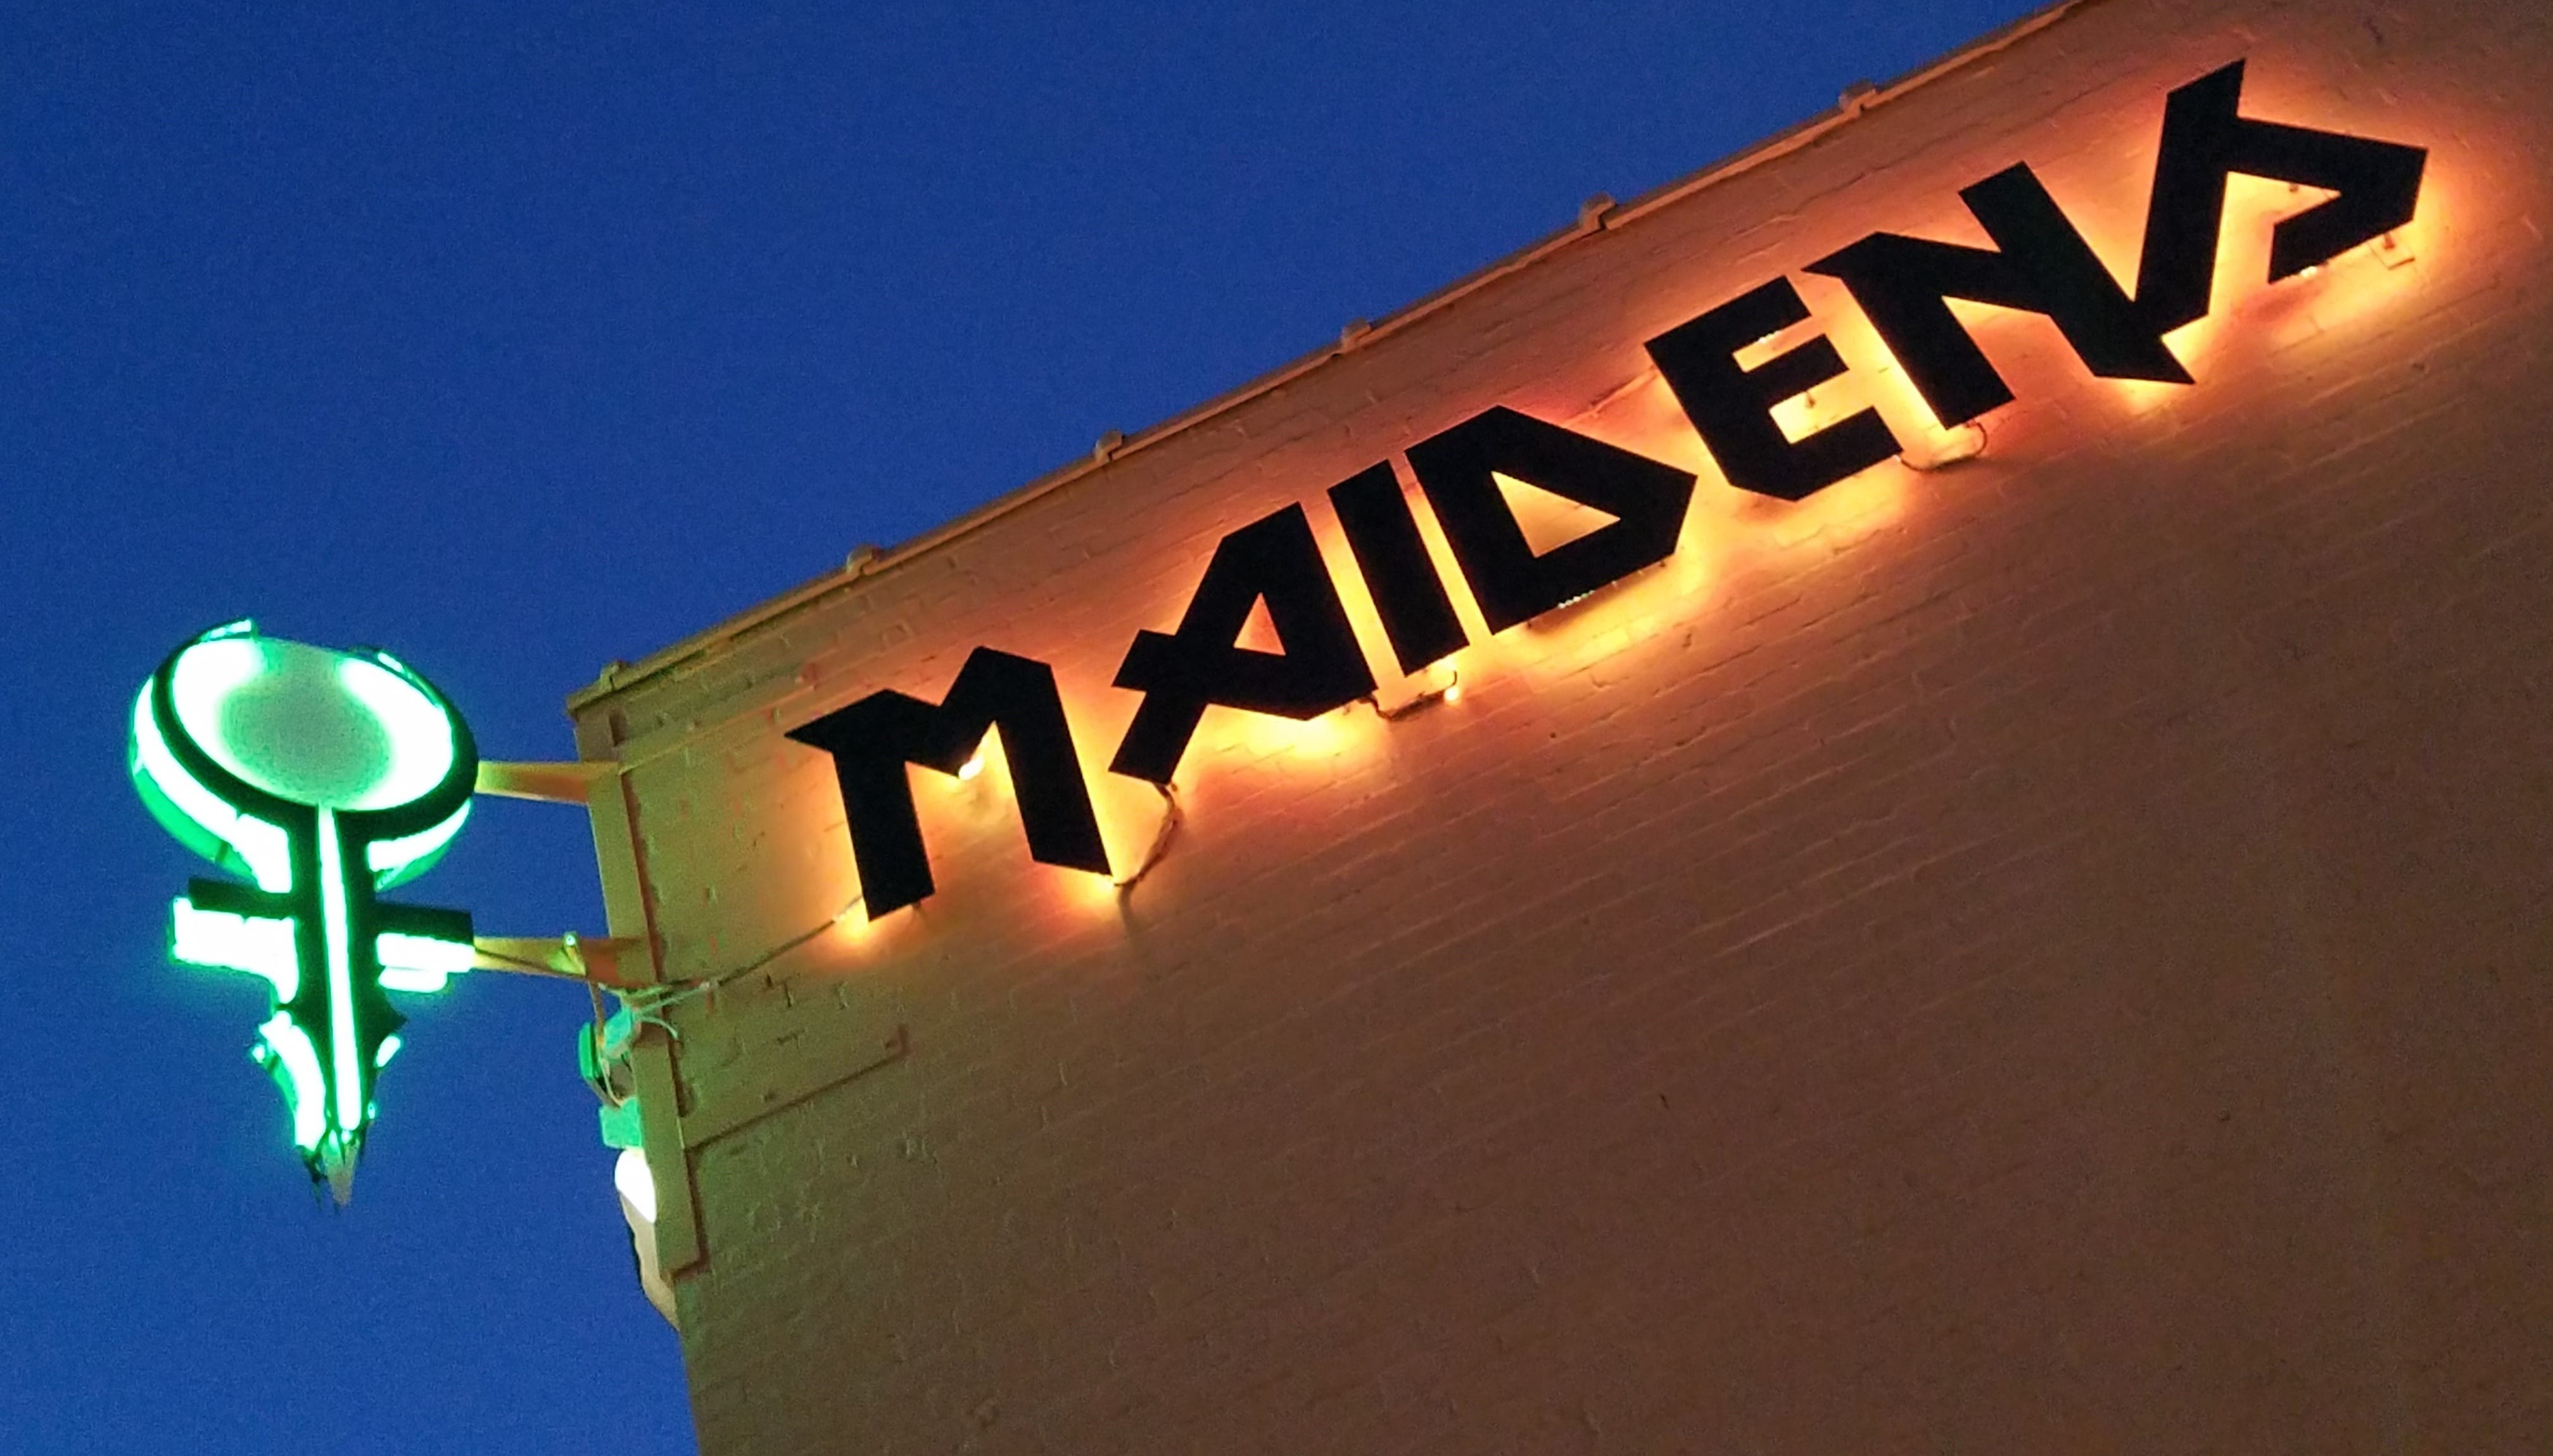 Maidens is located at the corner of W. Franklin and Wabash. Ladies very welcome.